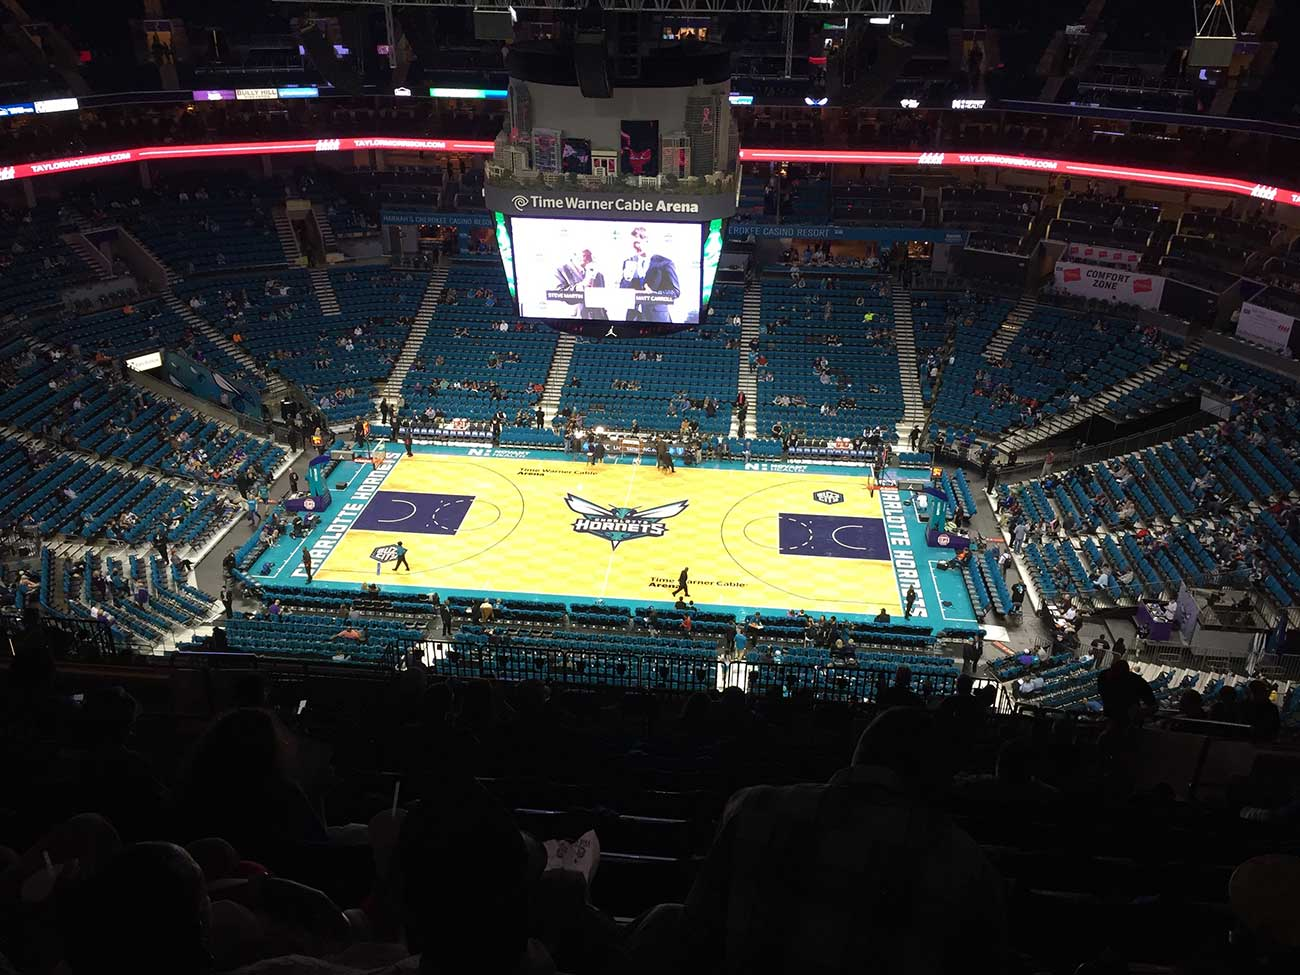 Here's the reason the Hornets are having their best season in years